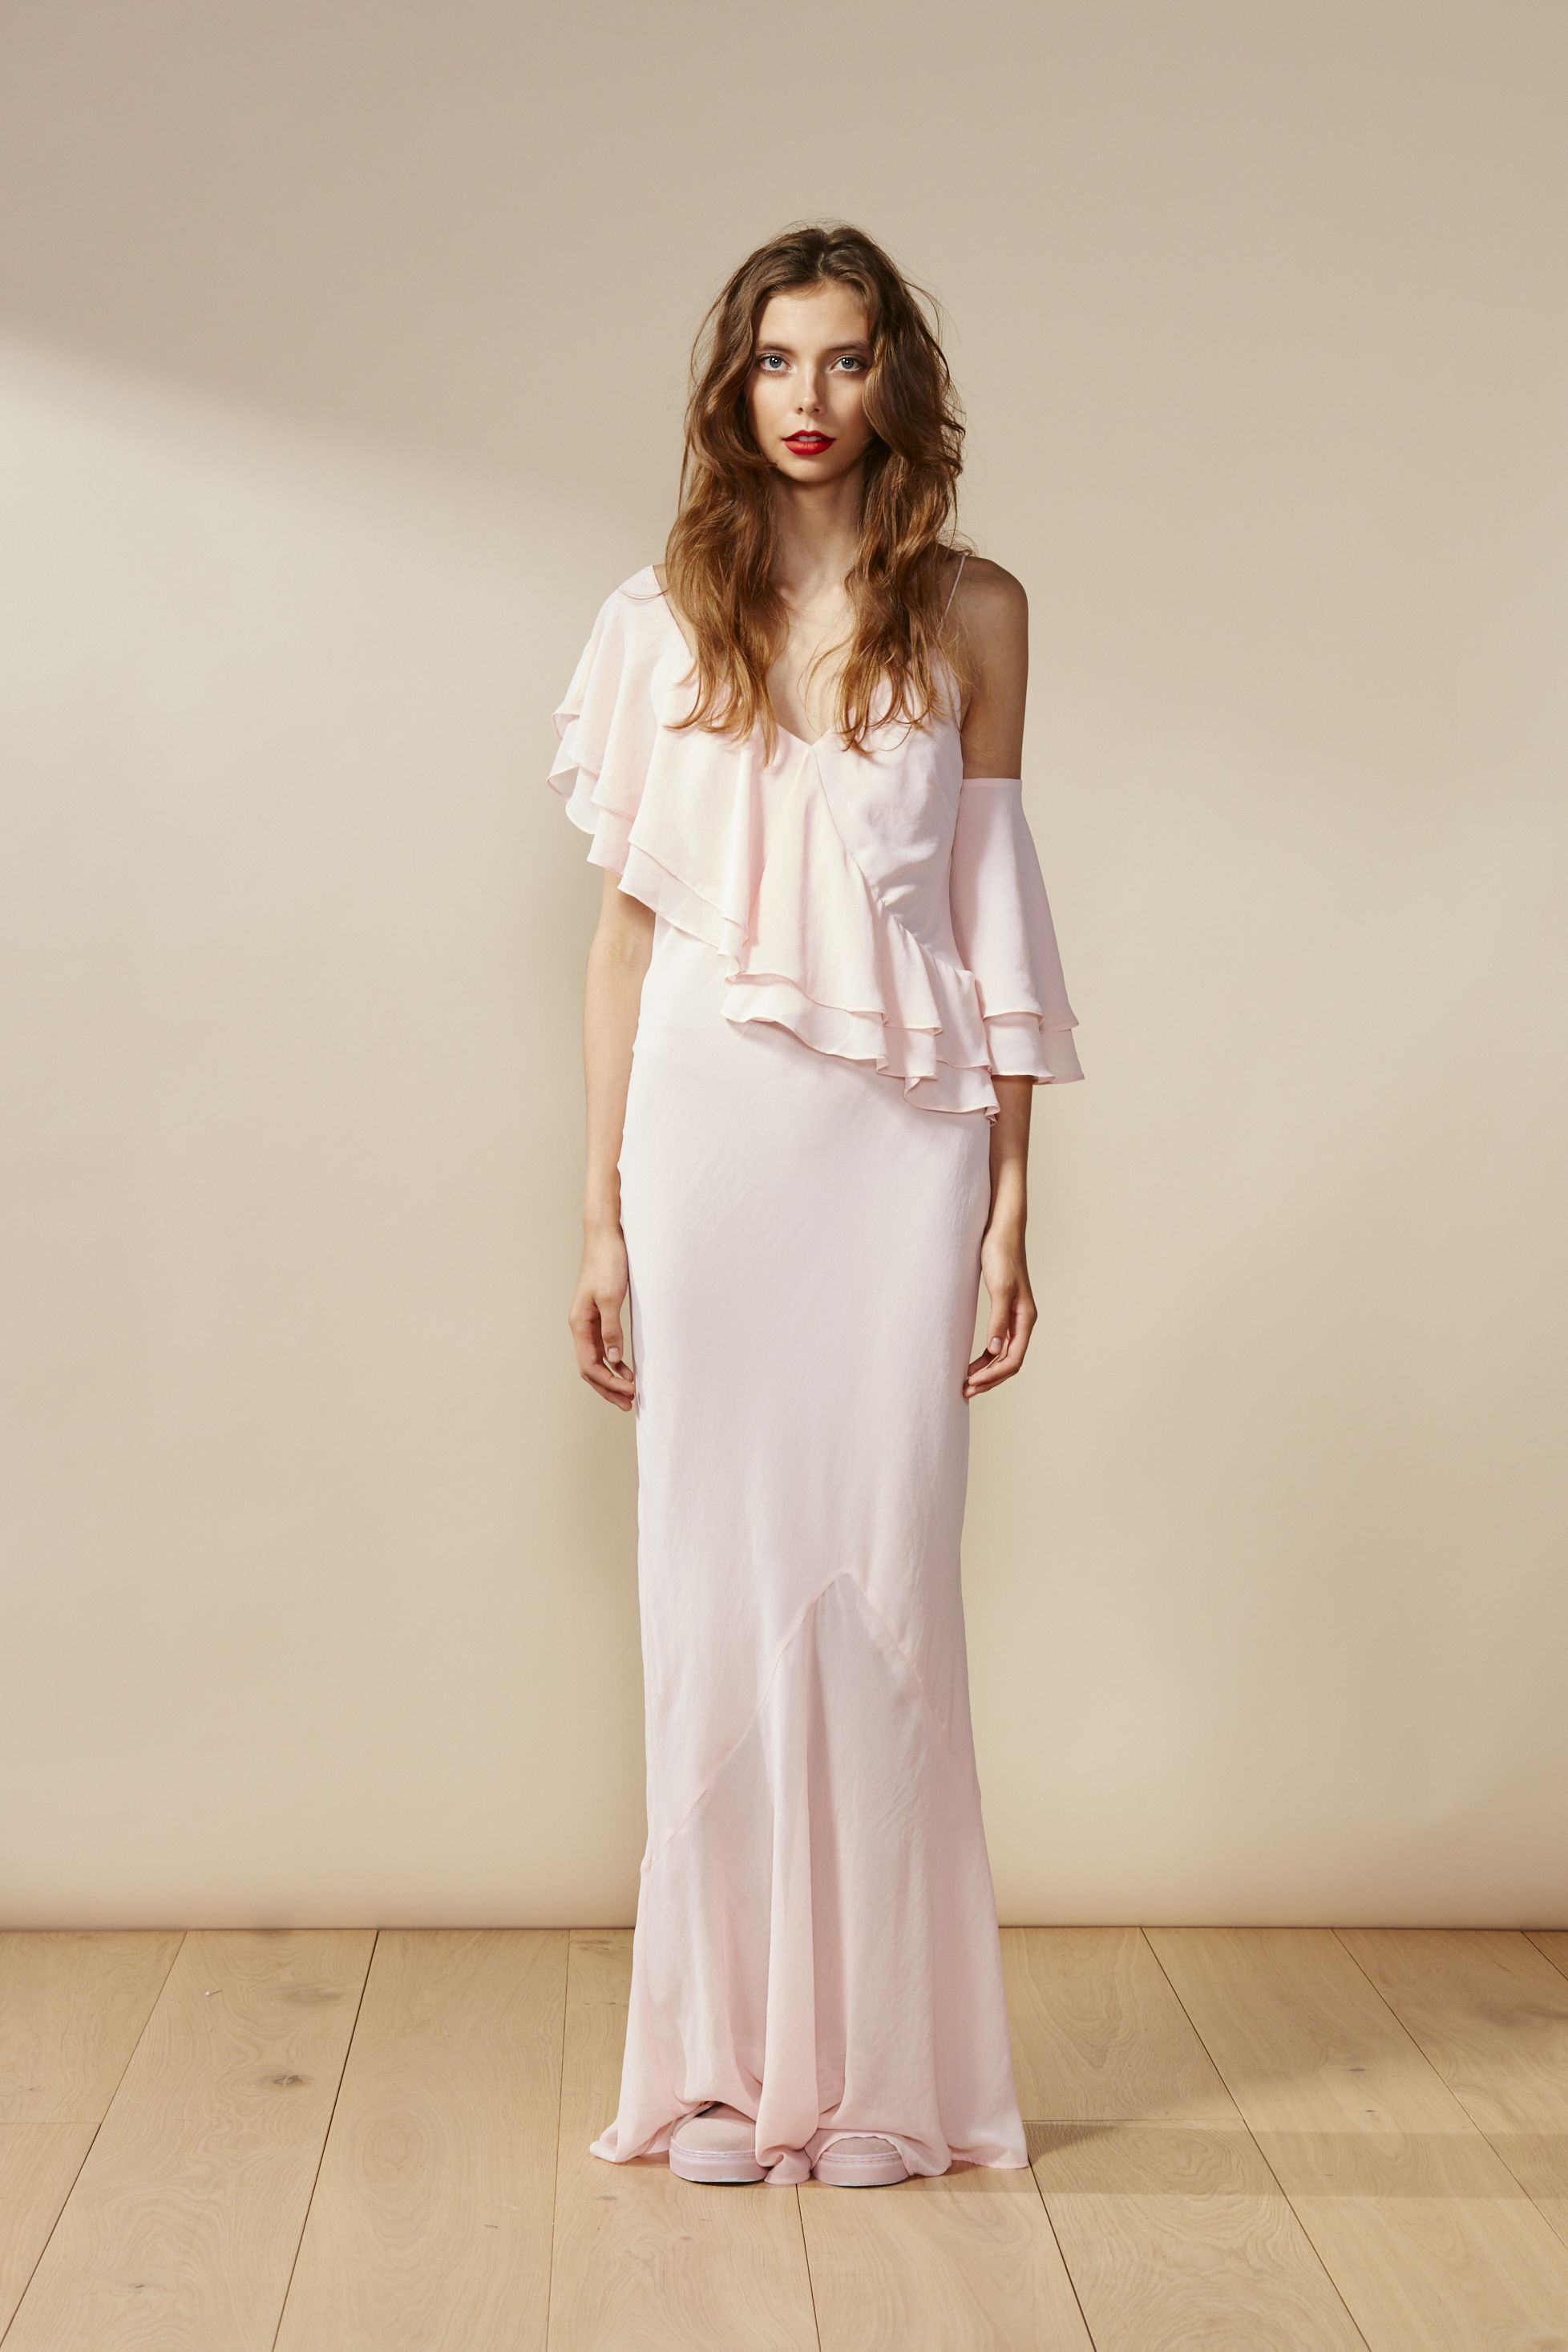 RUBY Marina Gown | RUBY \'NO DRAMA\' SPRING 16 | Pinterest | Gowns and ...